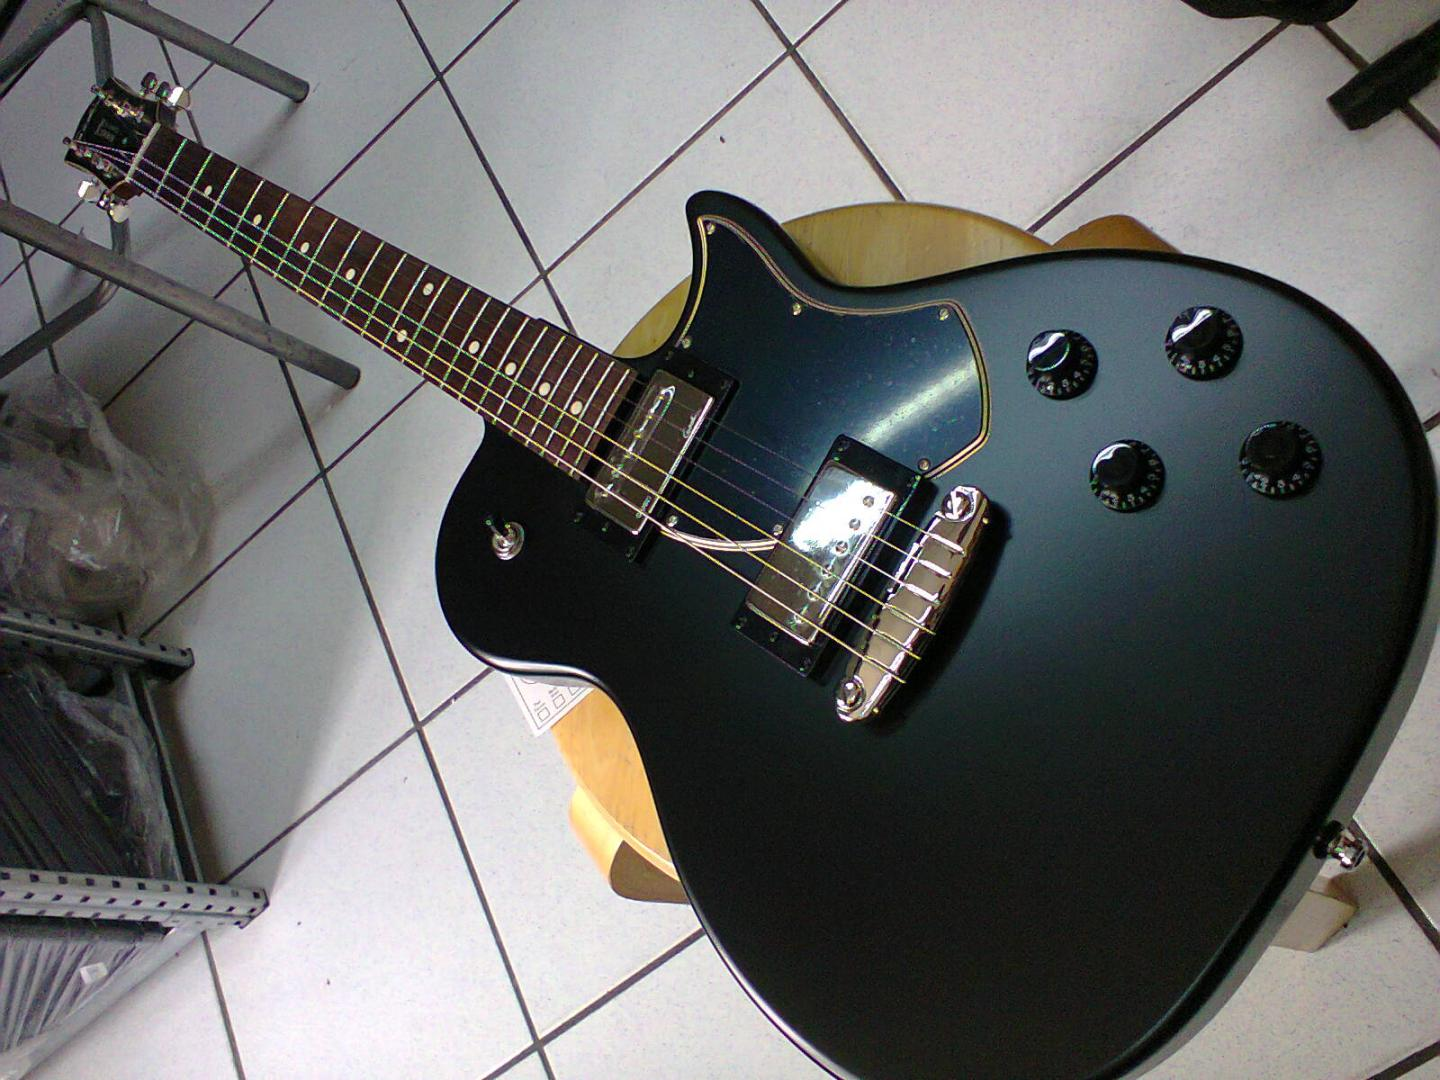 GODIN Summit Classic SG Mat Black HB 047147 GUITARE ELECTRIQUE NOIR MAT. CORPS TILLEUL CANADIEN. MANCHE ERABLE. TOUCHE PALISSANDRE.  2 MICROS HUMBUCKER CUSTOM GODIN. 2 VOL. 2 TON. SELECTEUR 3 POS. ACCASTILLAGE CHROME